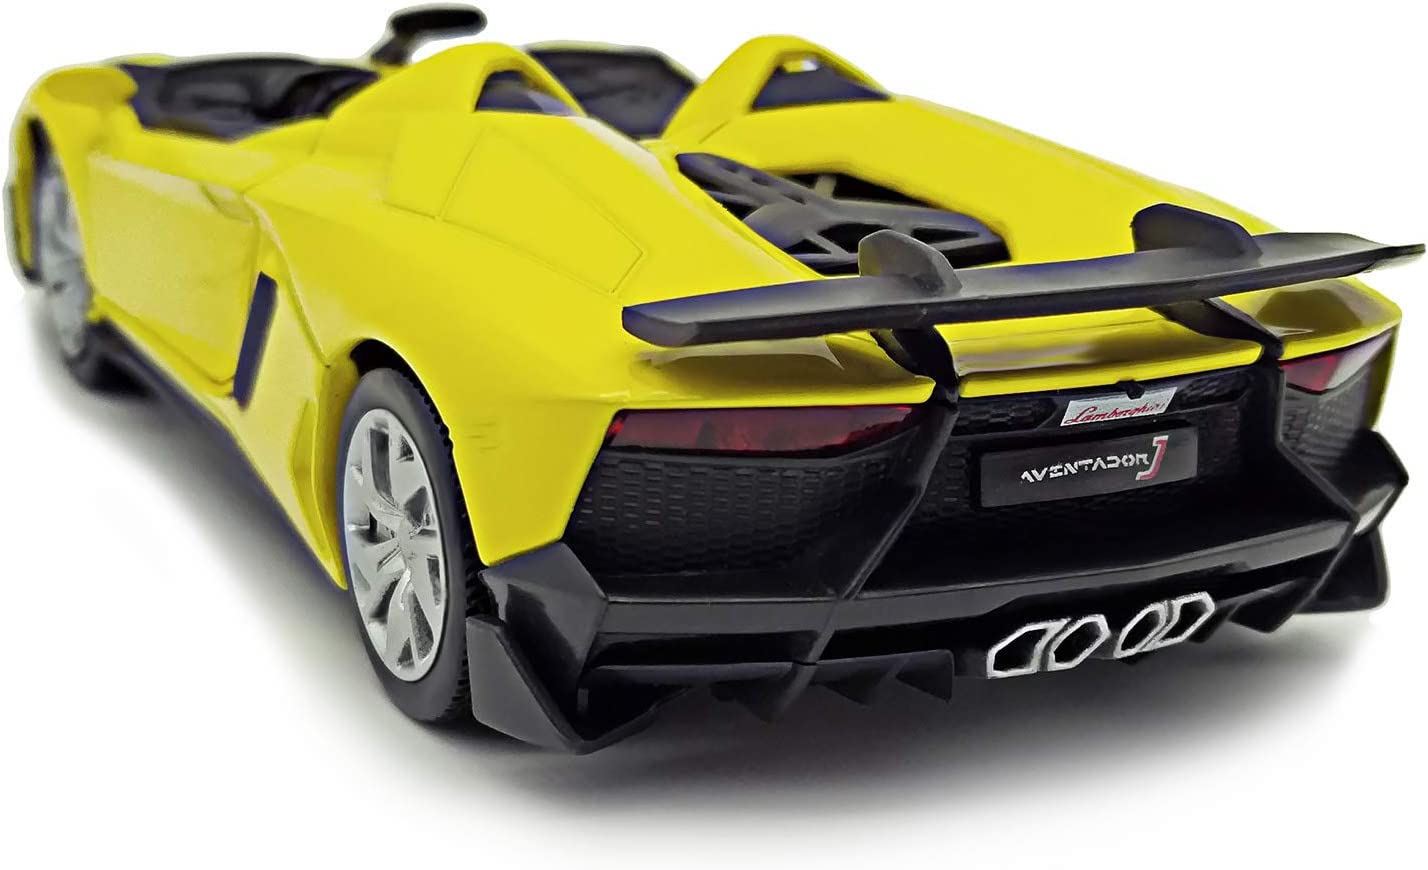 Details about  /LMOY 1:32 Scale Die-cast Super Sports Car Lambo Aventador J Pull Back Cabriolet